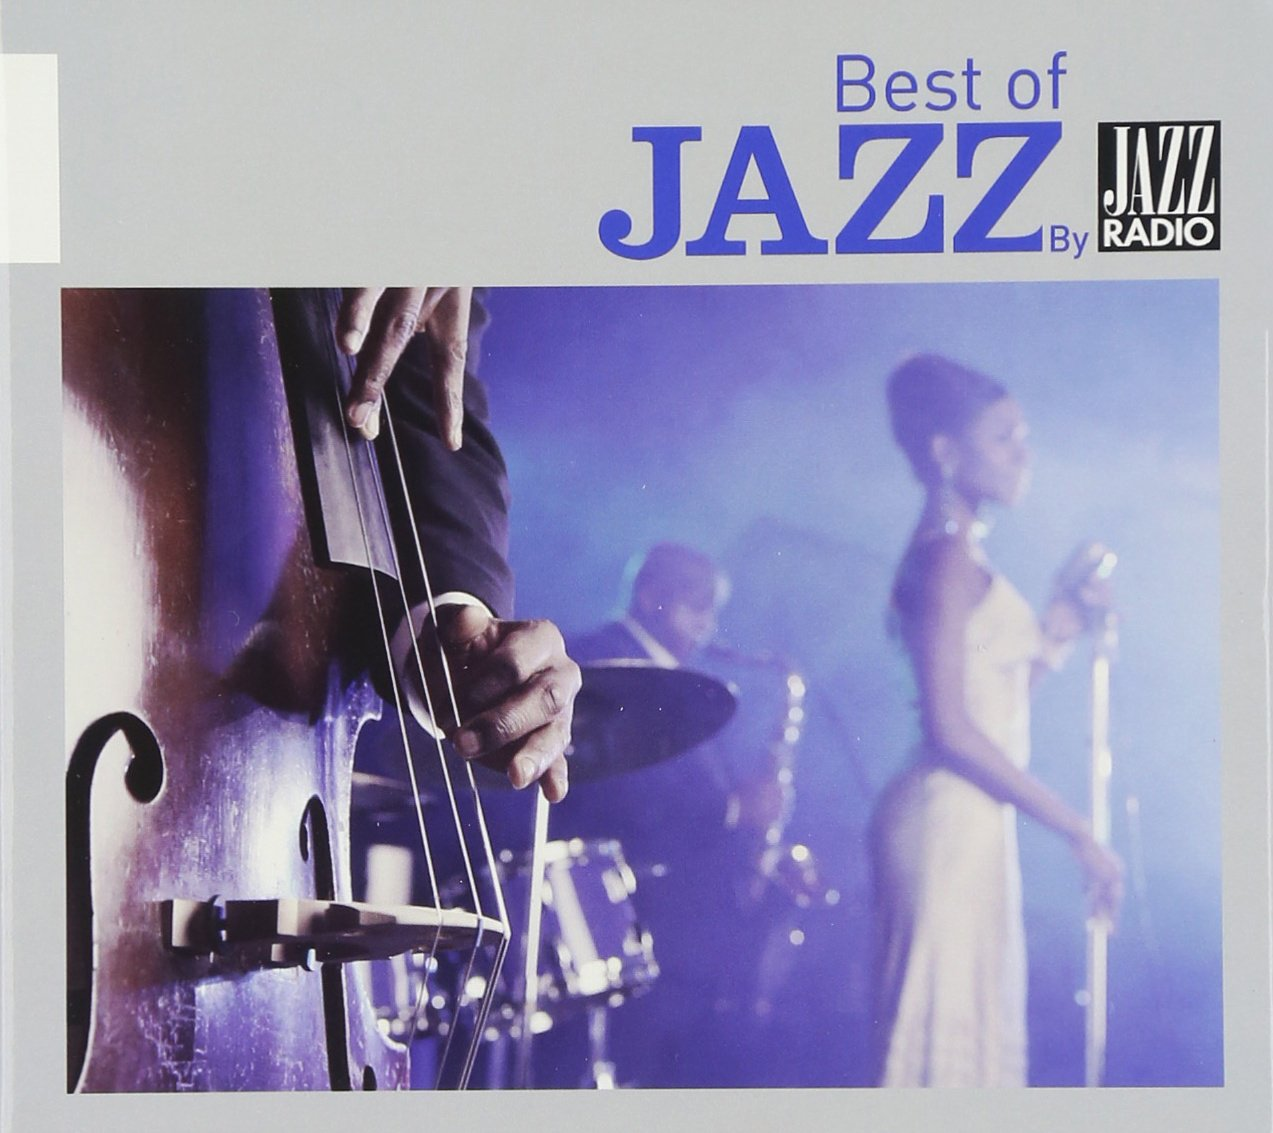 Best of Jazz                                                                                                                                                                                                                                                                                                                                                                                                <span class=